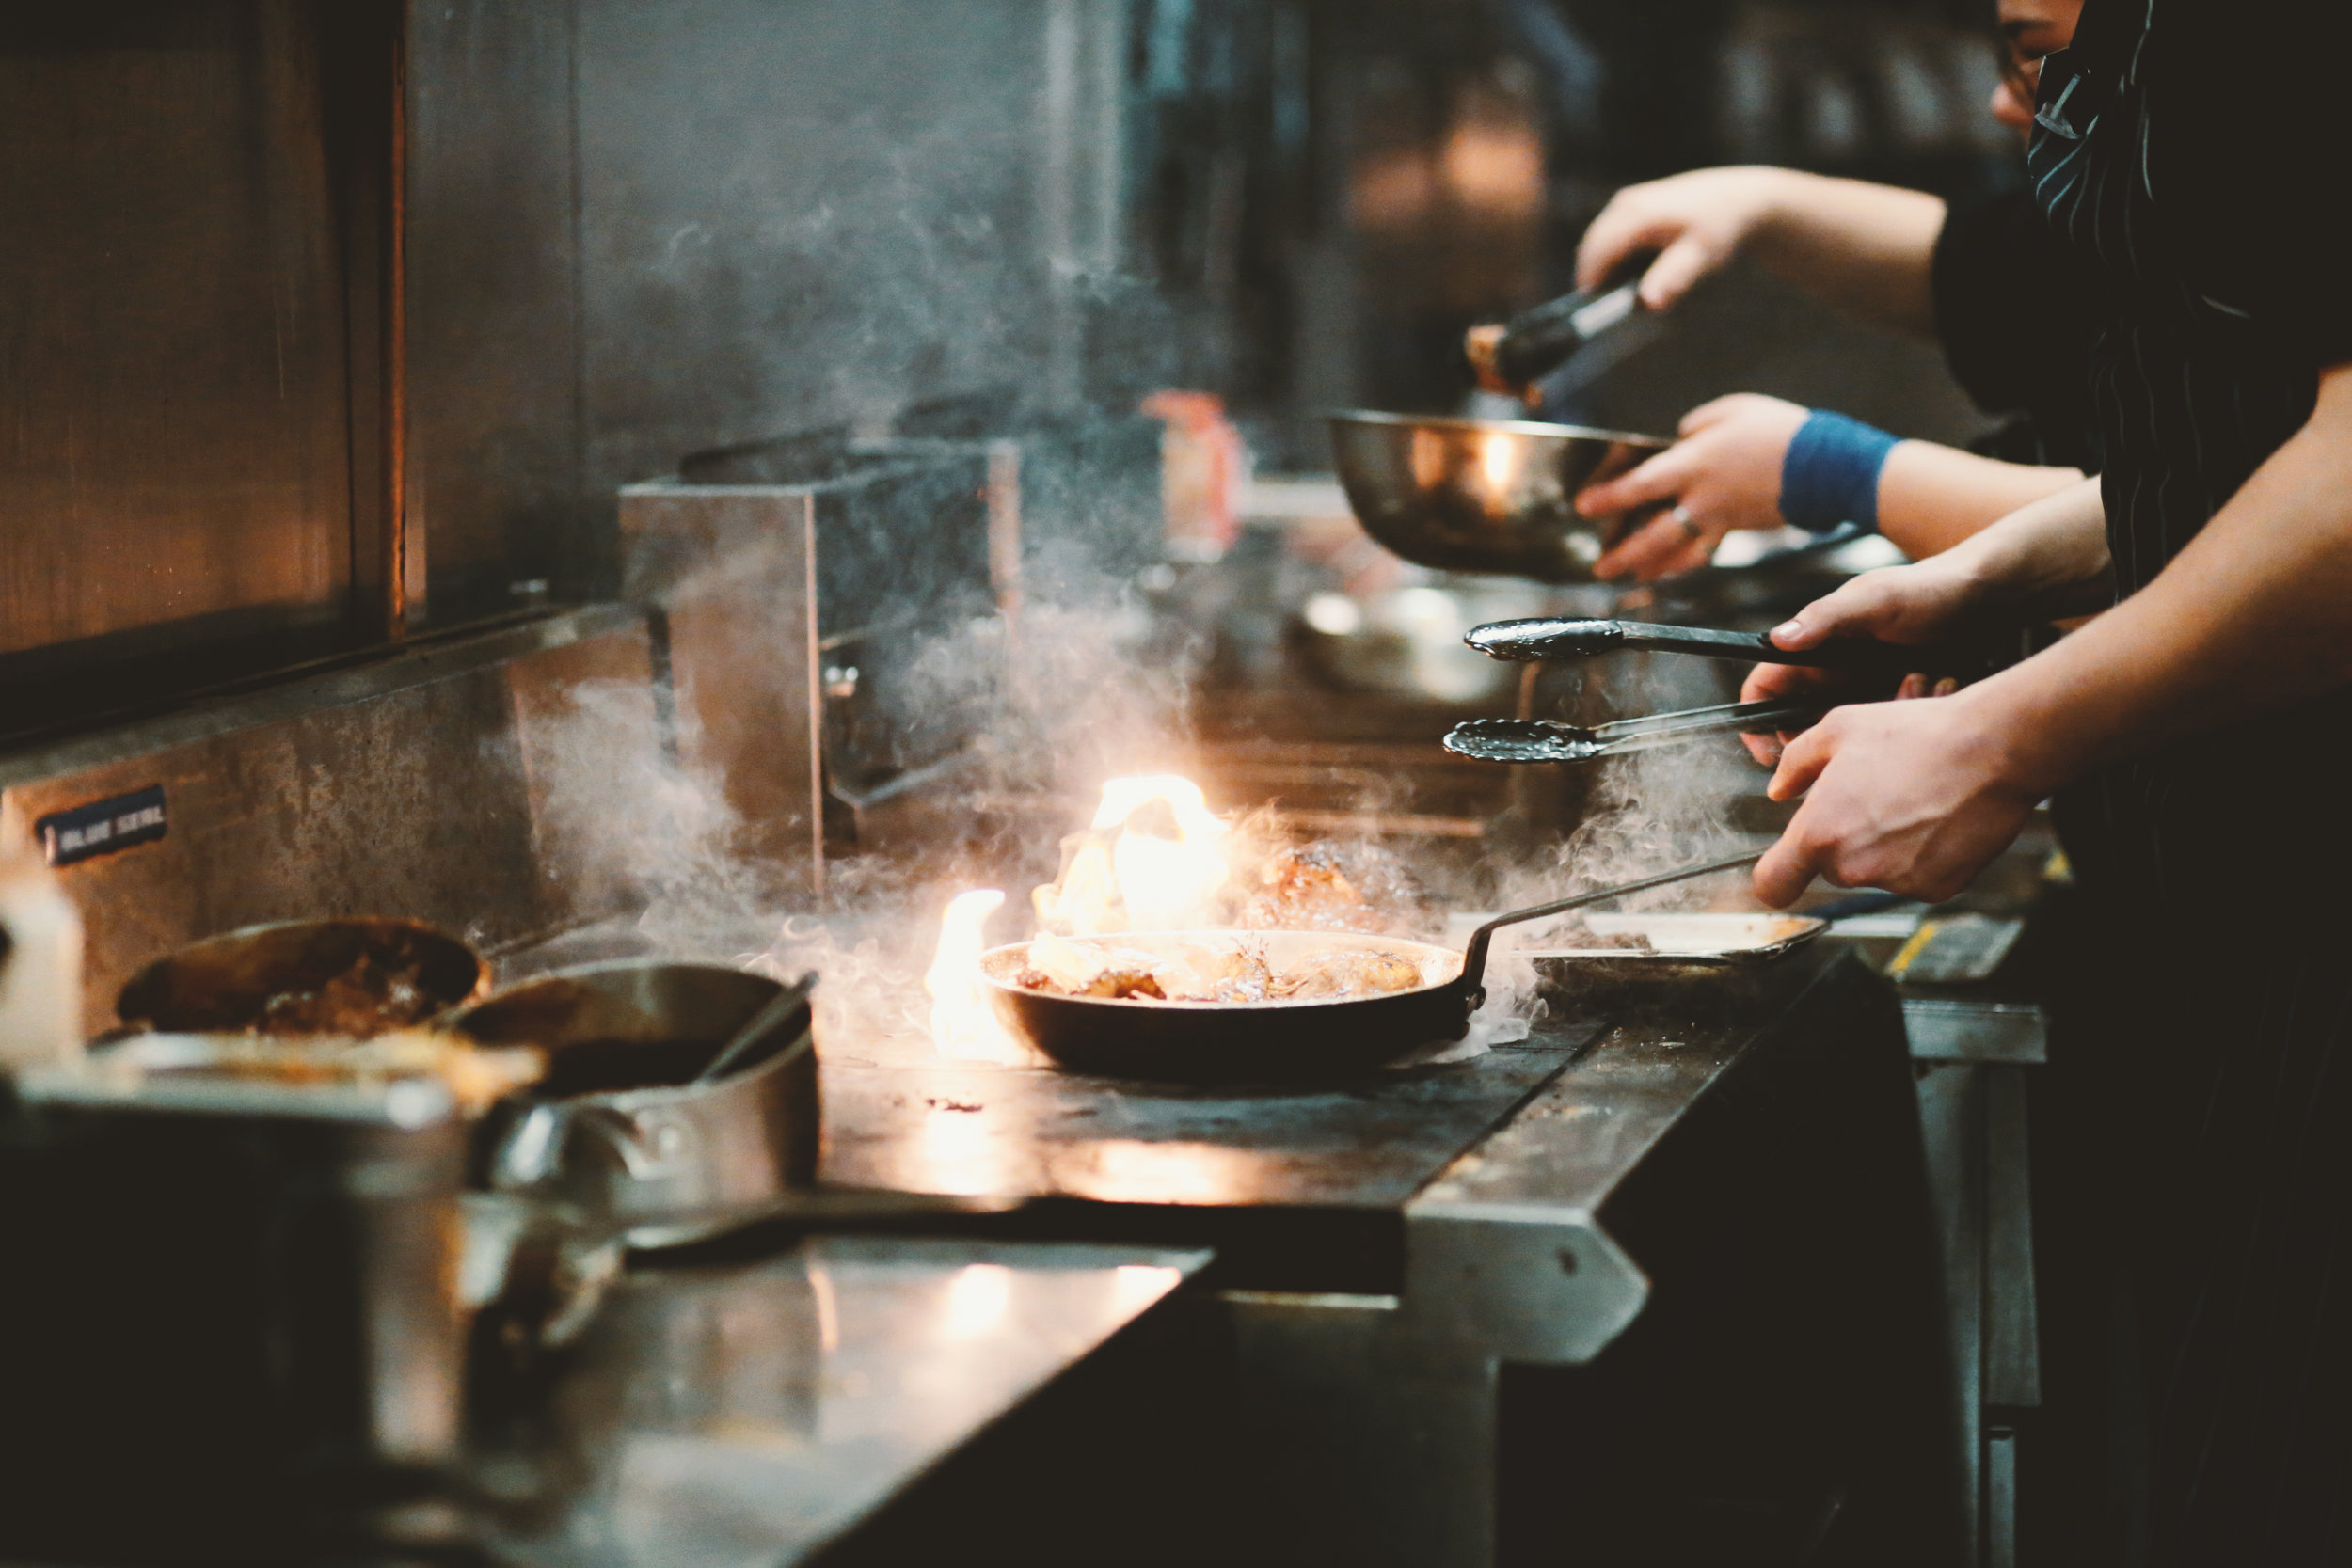 Restaurant cooking image.jpg